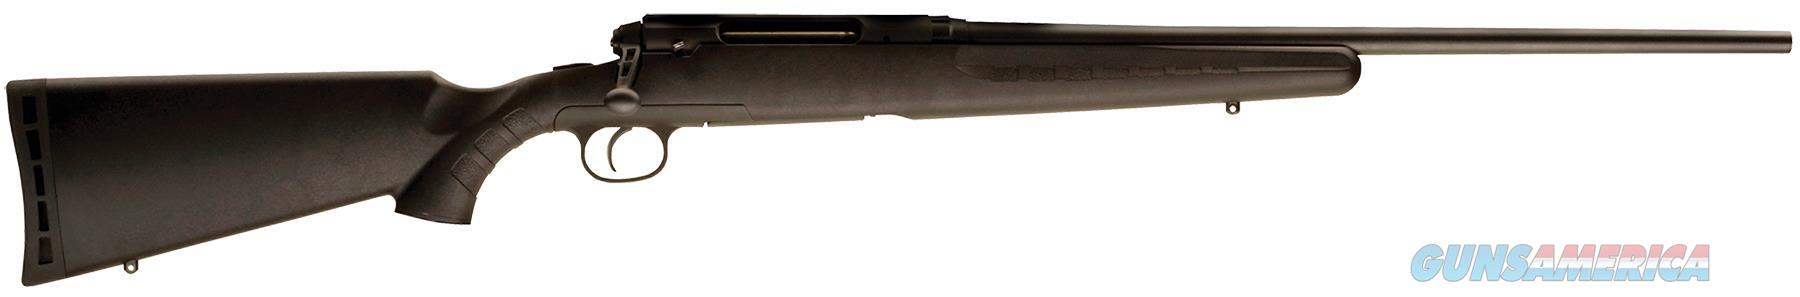 "SAVAGE ARMS AXIS 308 22"" BLK 19223  Guns > Rifles > Savage Rifles > Standard Bolt Action > Sporting"